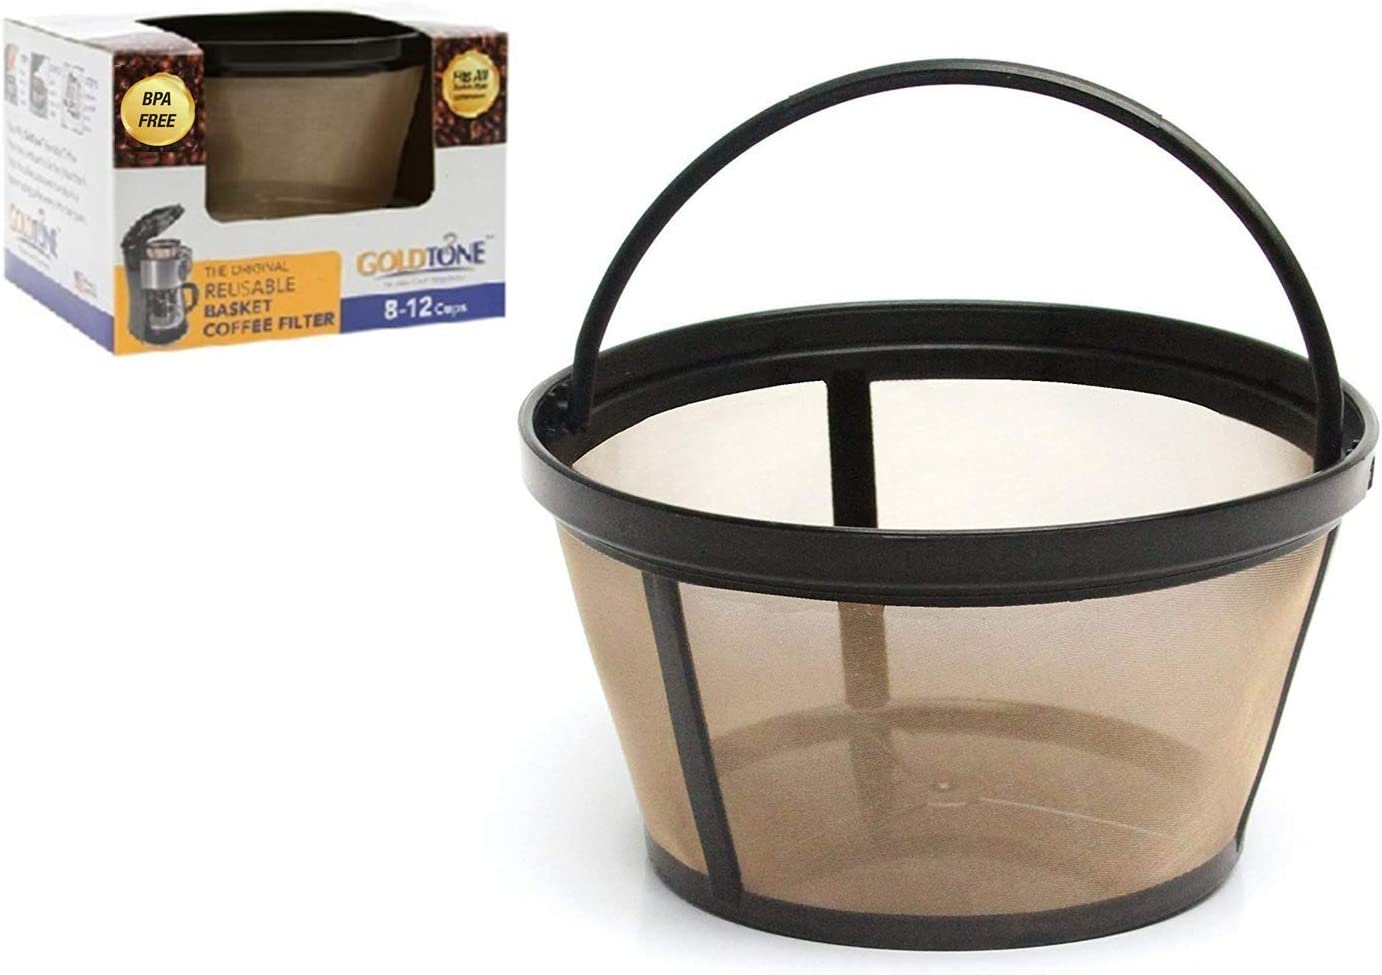 GOLDTONE Reusable 8-12 Cup Basket Coffee Filter fits Mr. Coffee Makers and Brewers, BPA Free. 61QPDb3RVhL